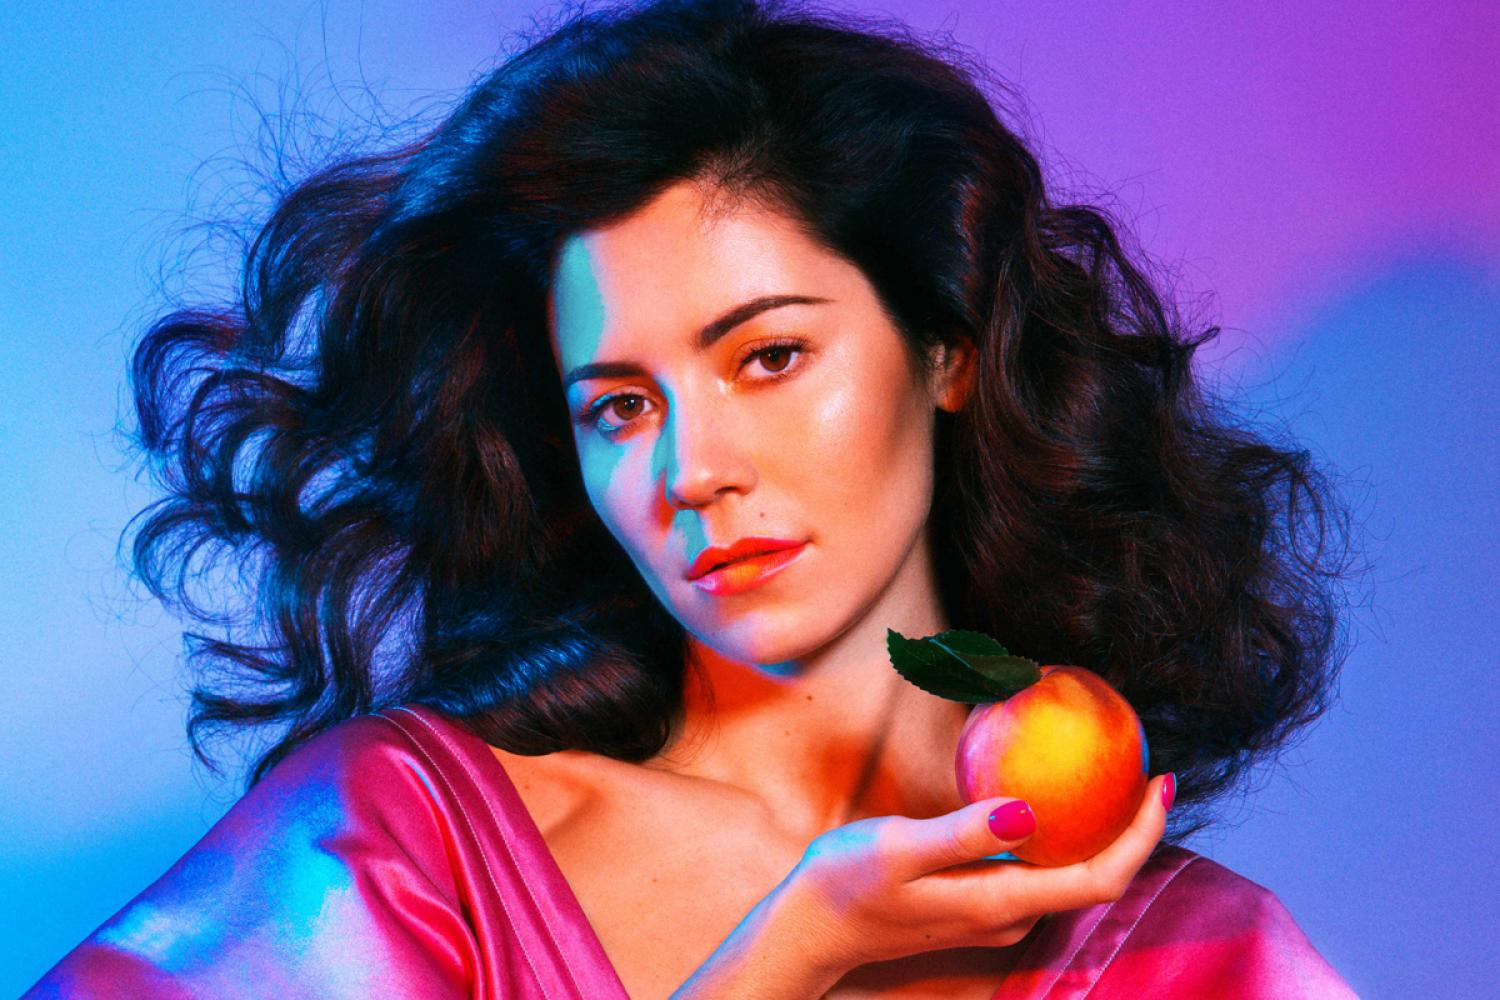 Take a taste of this FROOT | Marina and the Diamonds